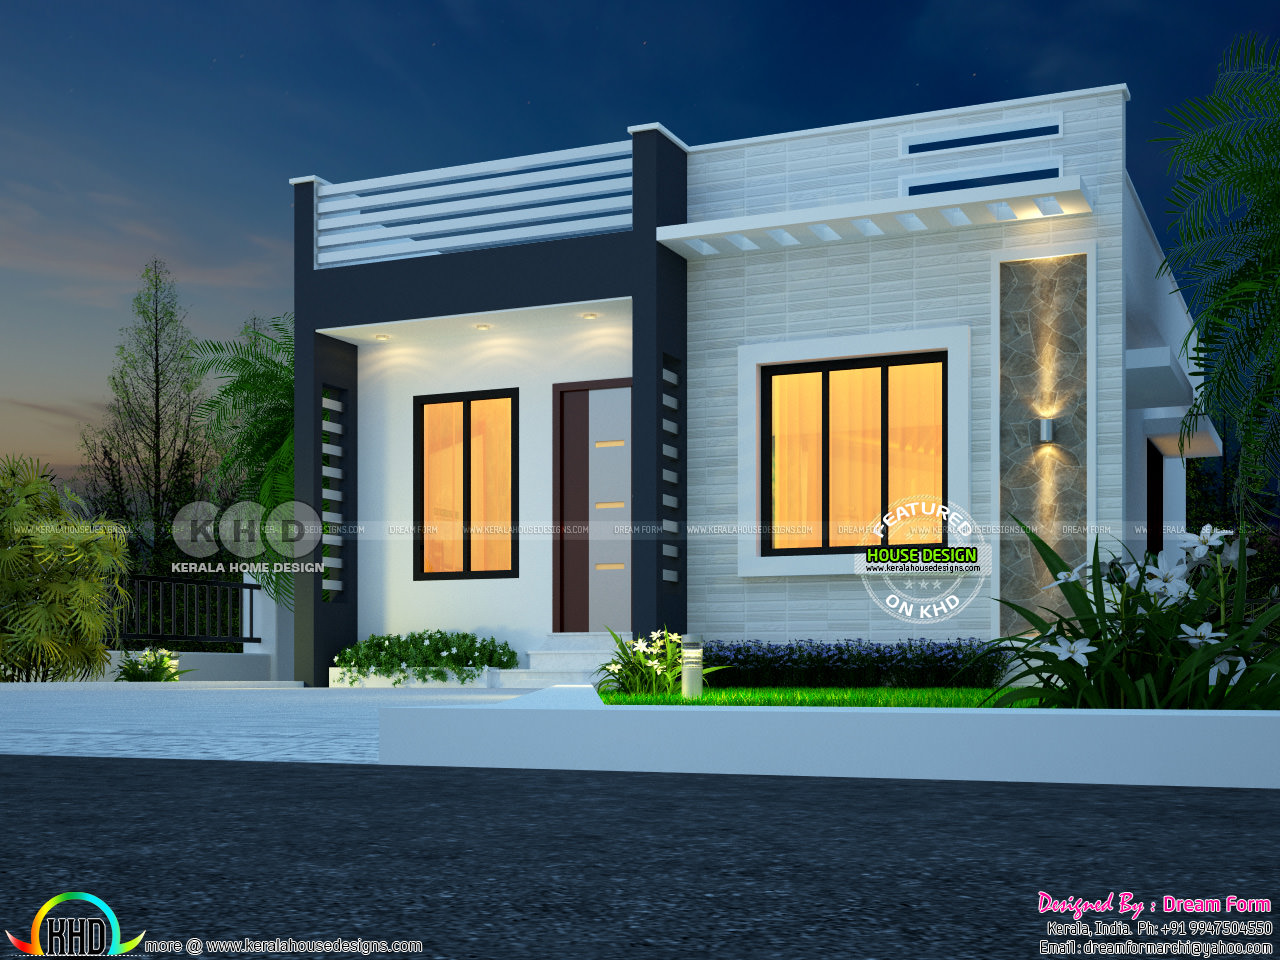 Under ₹10 lakhs Kerala home - Kerala home design and floor ...